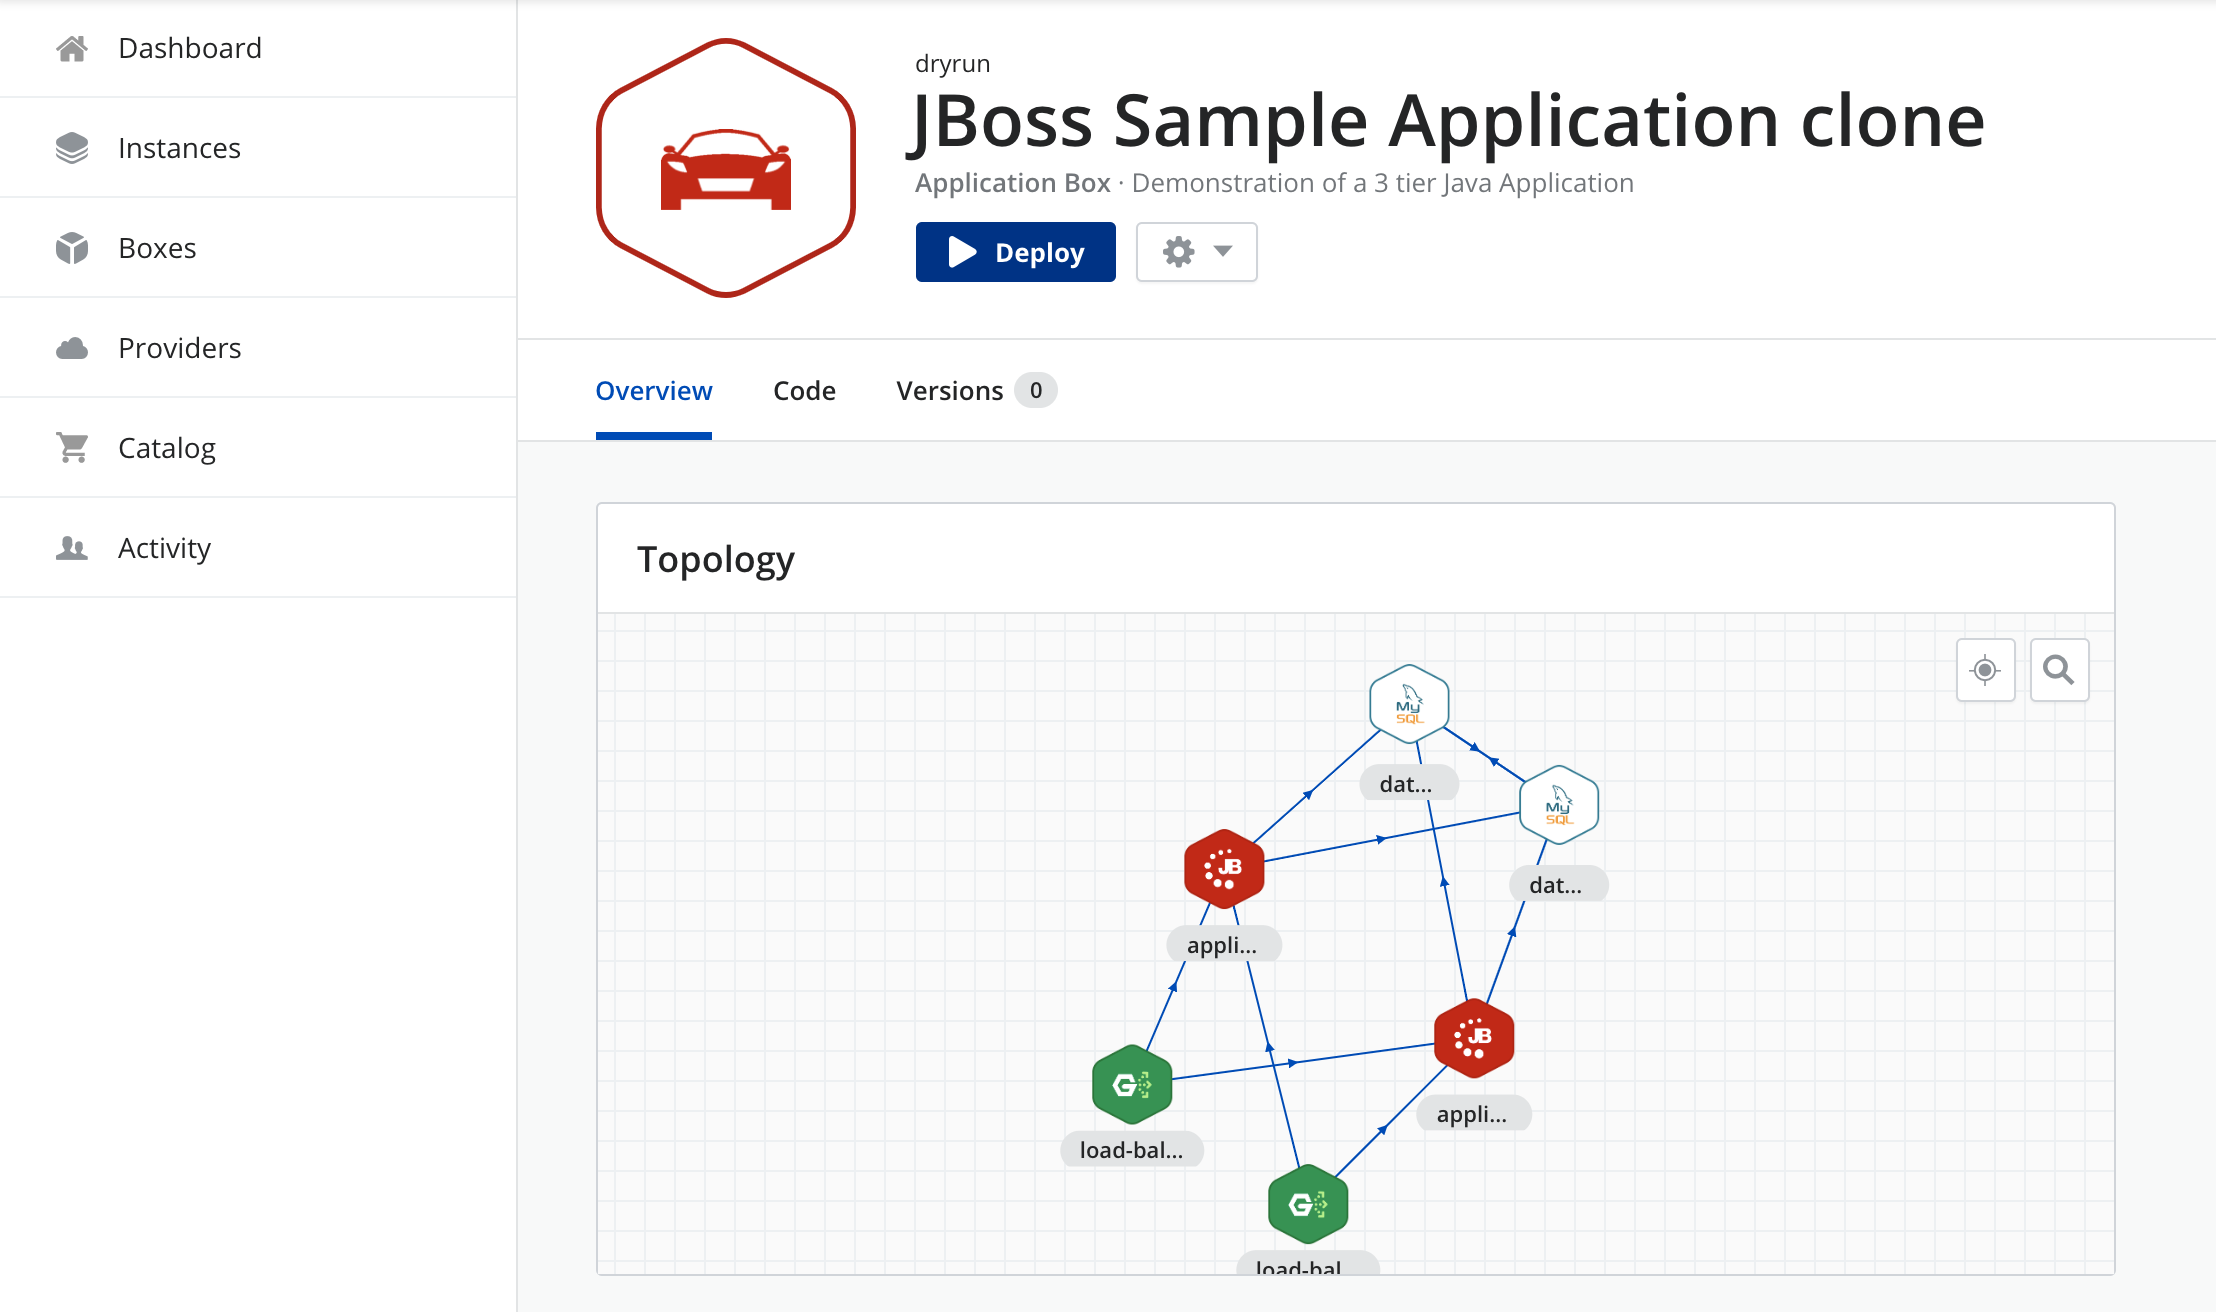 Application Box Topology